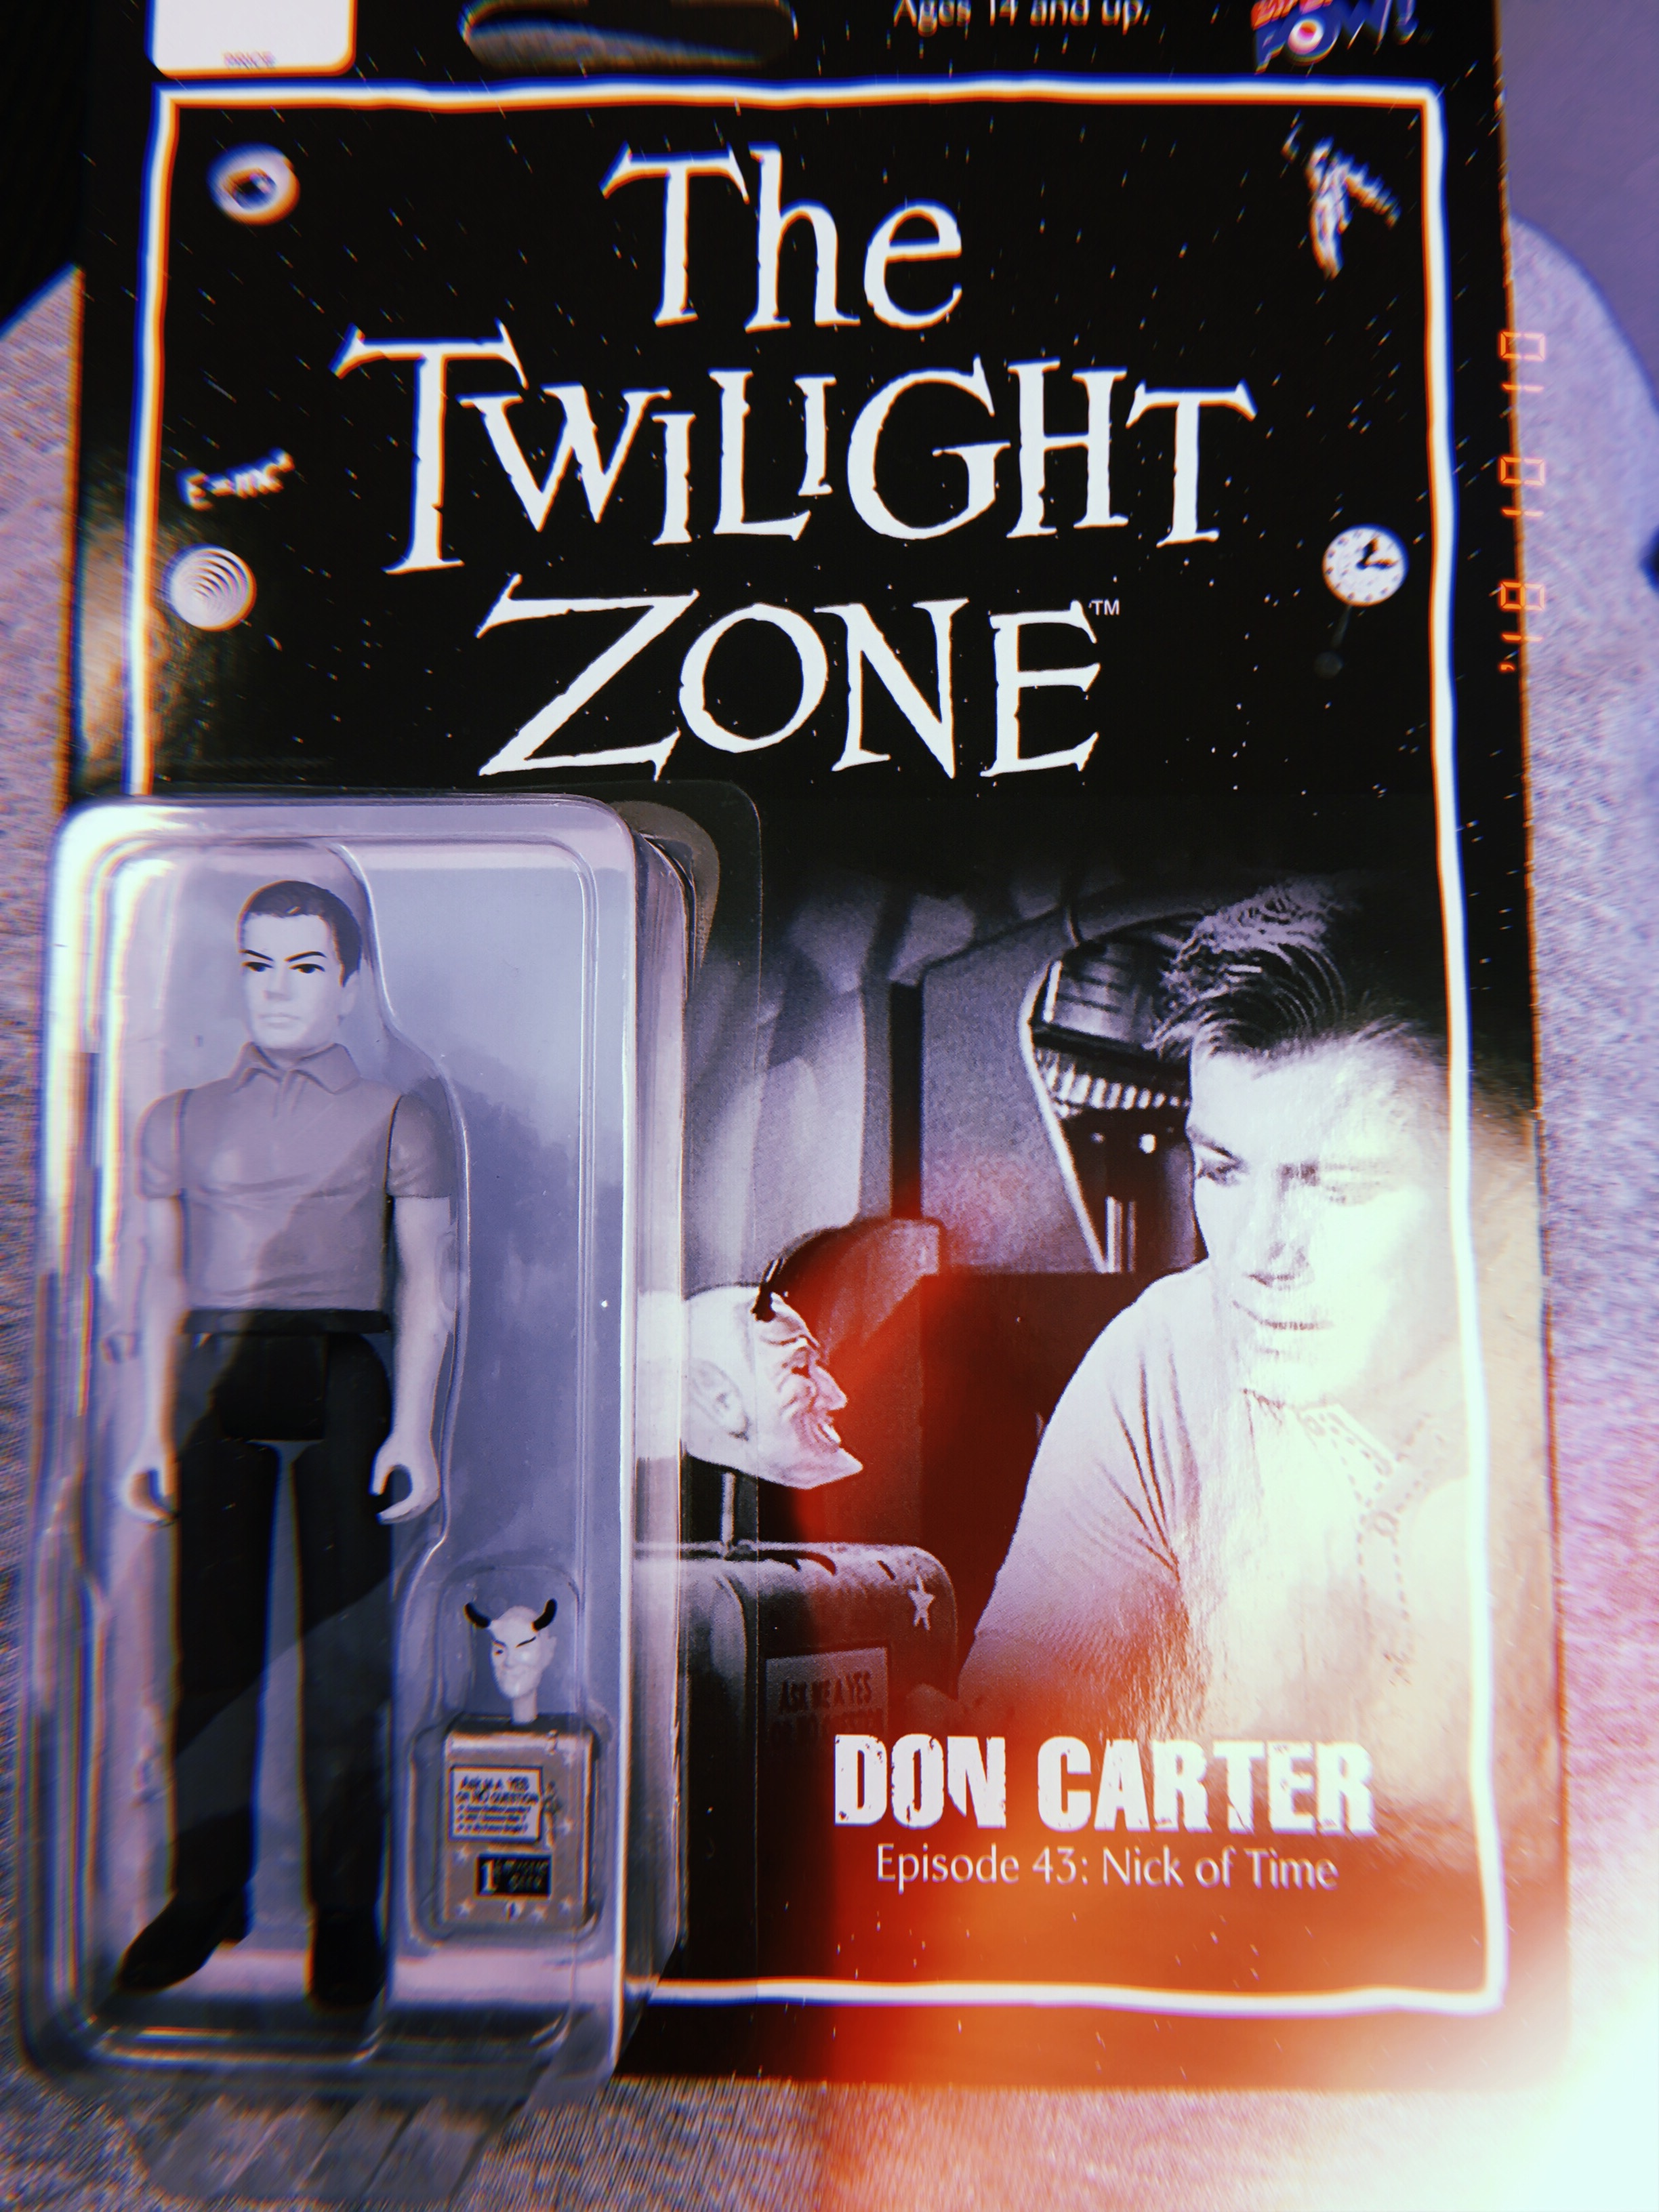 A great figurine from The Twilight Zone - specifically Ep 43. starring William Shatner